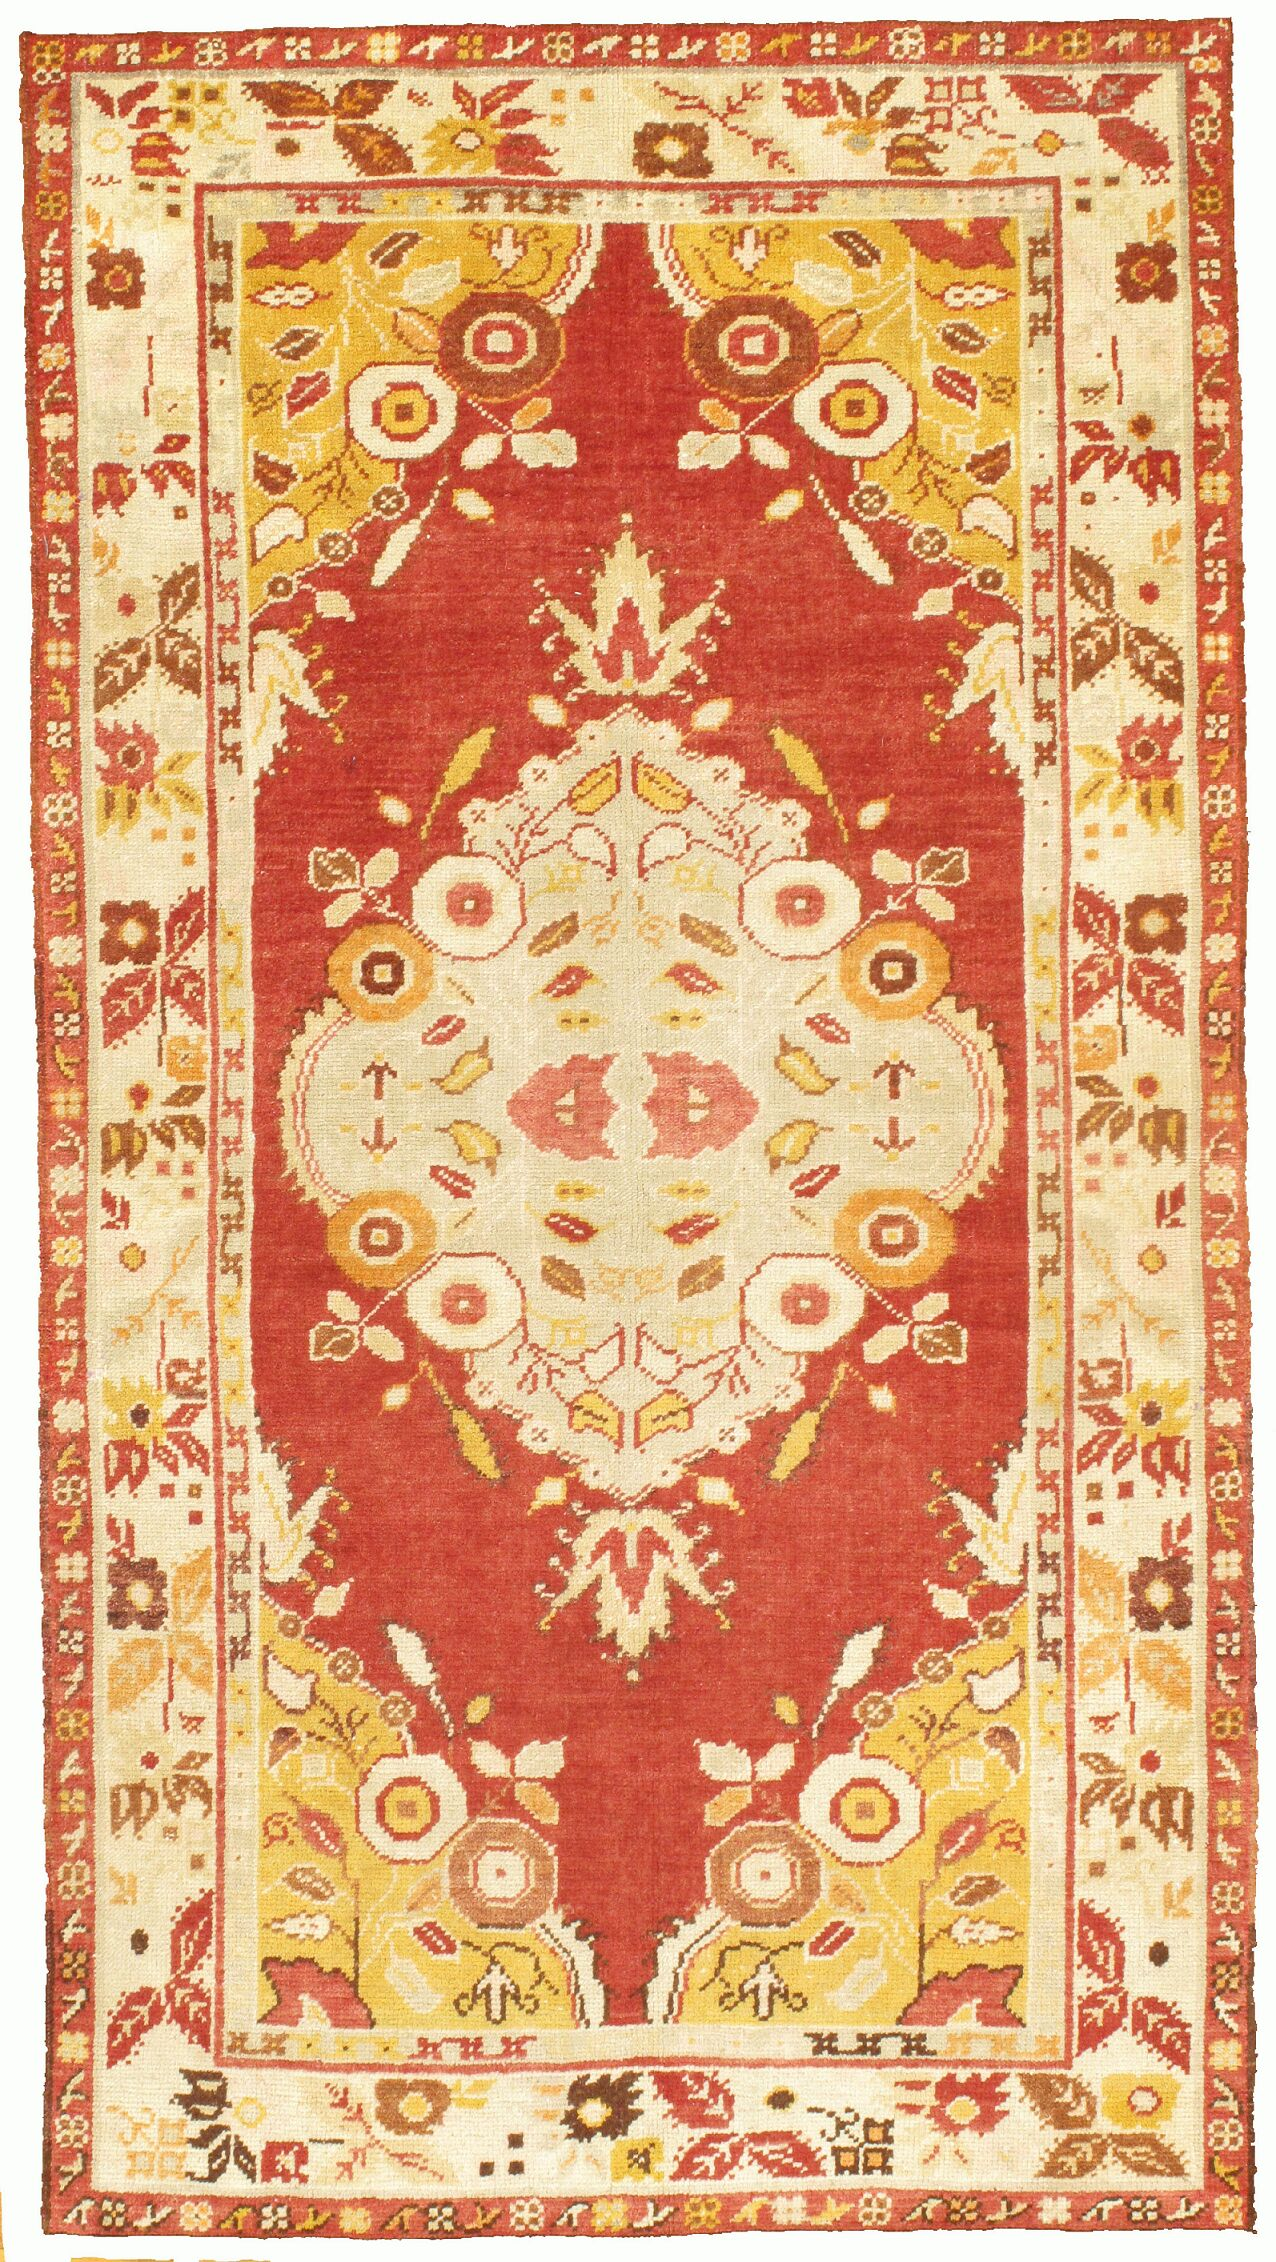 Vintage Oushak Hand-Knotted Wool Red Area Rug